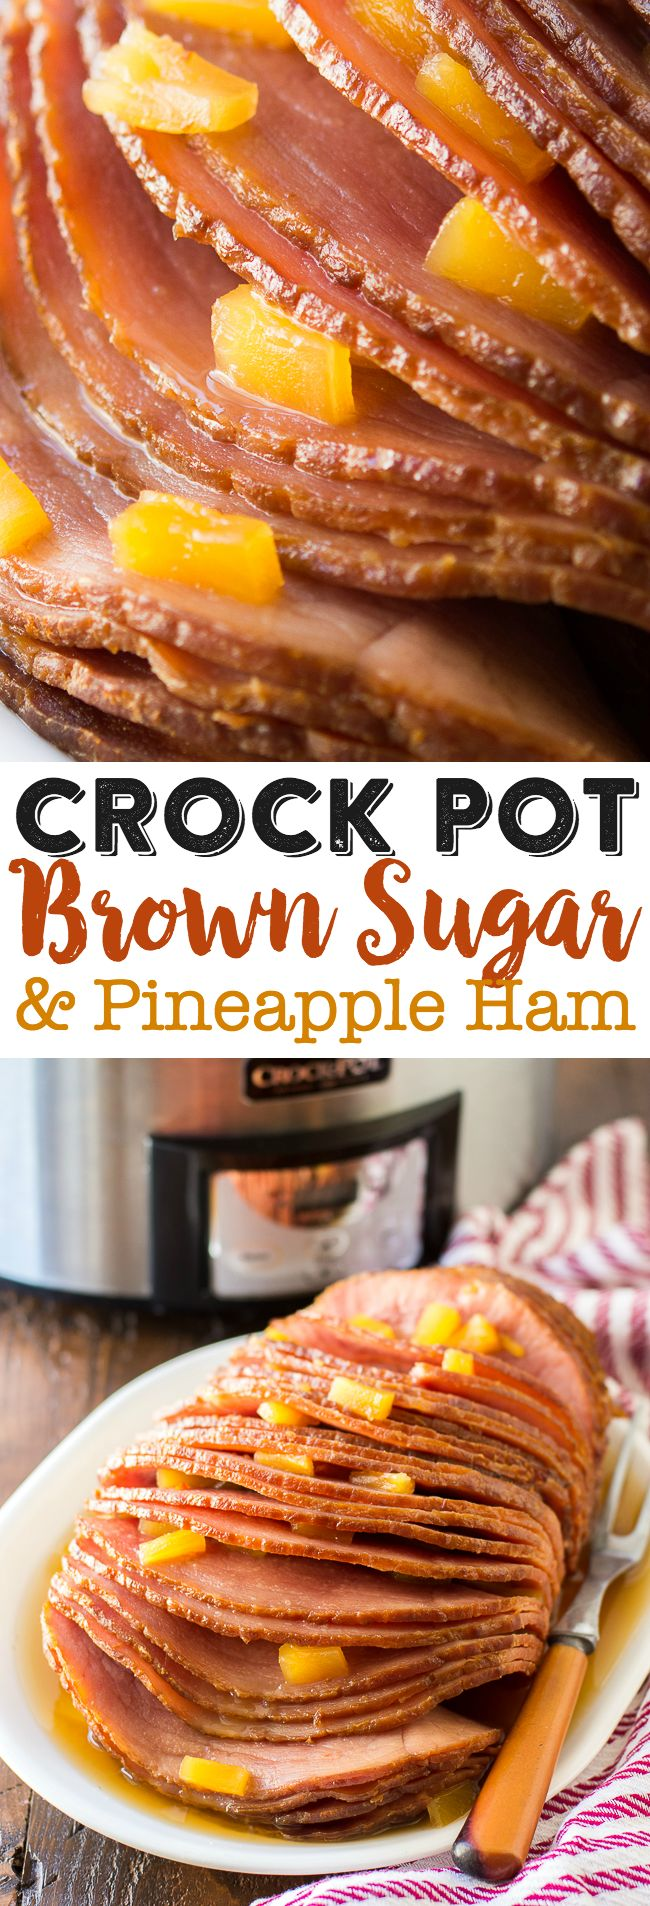 ***Crock Pot Brown Sugar Pineapple Ham Recipe